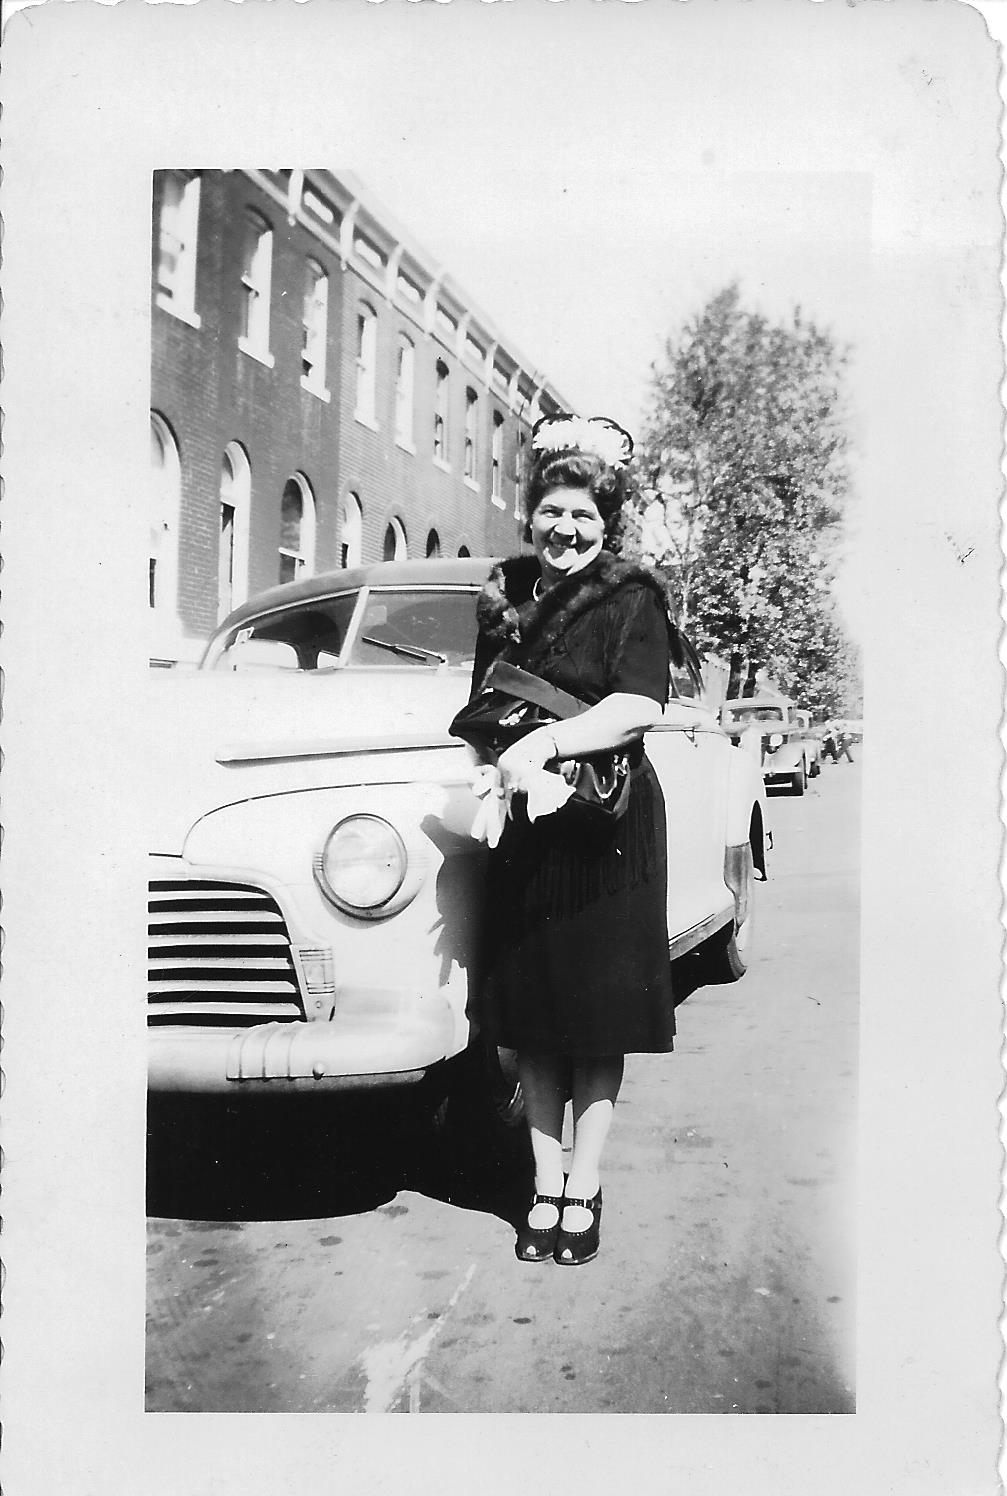 Mimi with a car